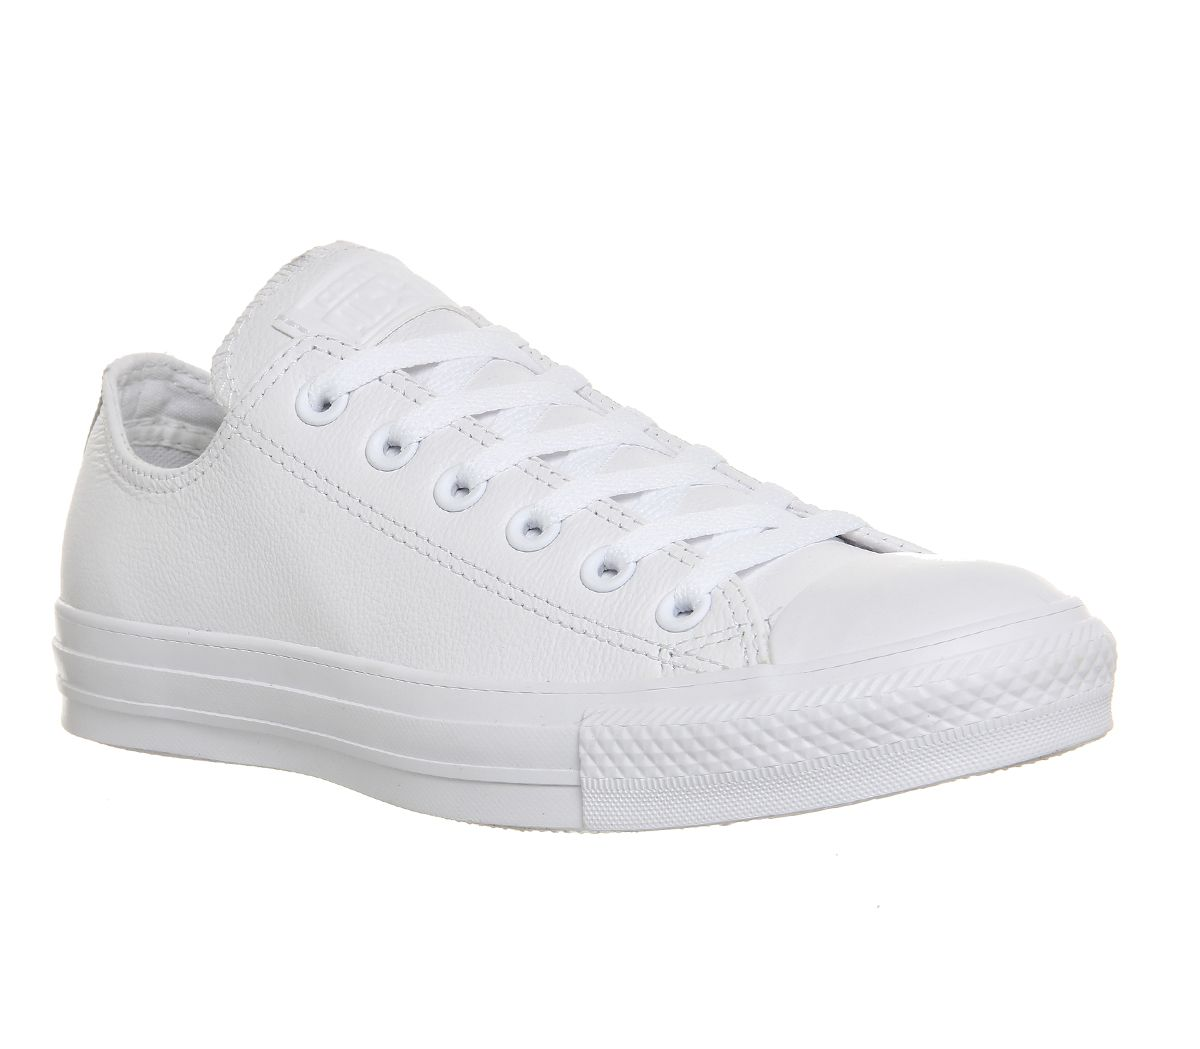 5c9936975d9e Converse All Star Low Leather White Mono Leather - Unisex Sports